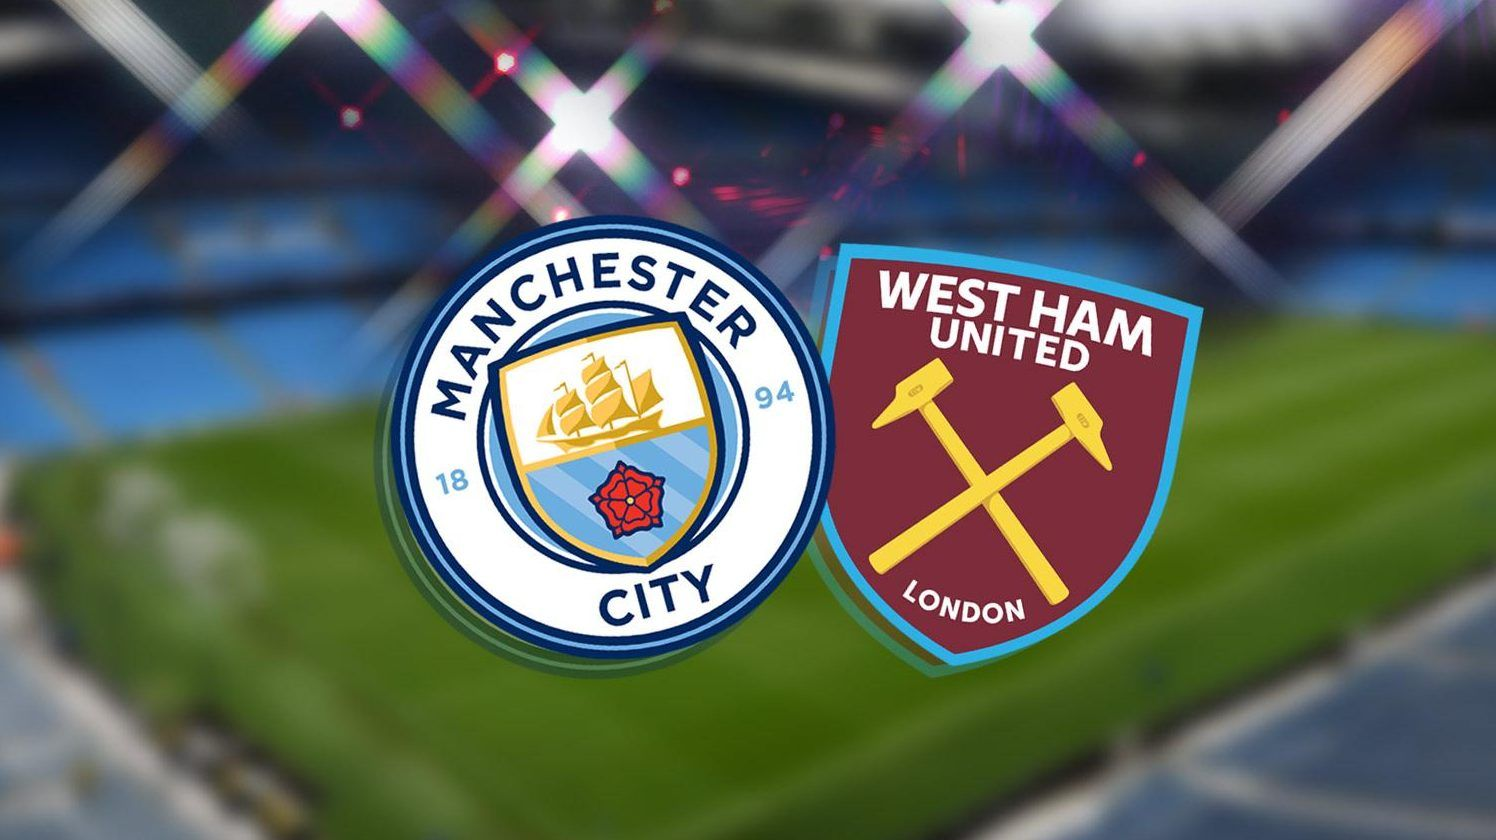 Manchester City Vs West Ham United Preview Premier League 2019 20 In 2020 Manchester City Premier League West Ham United